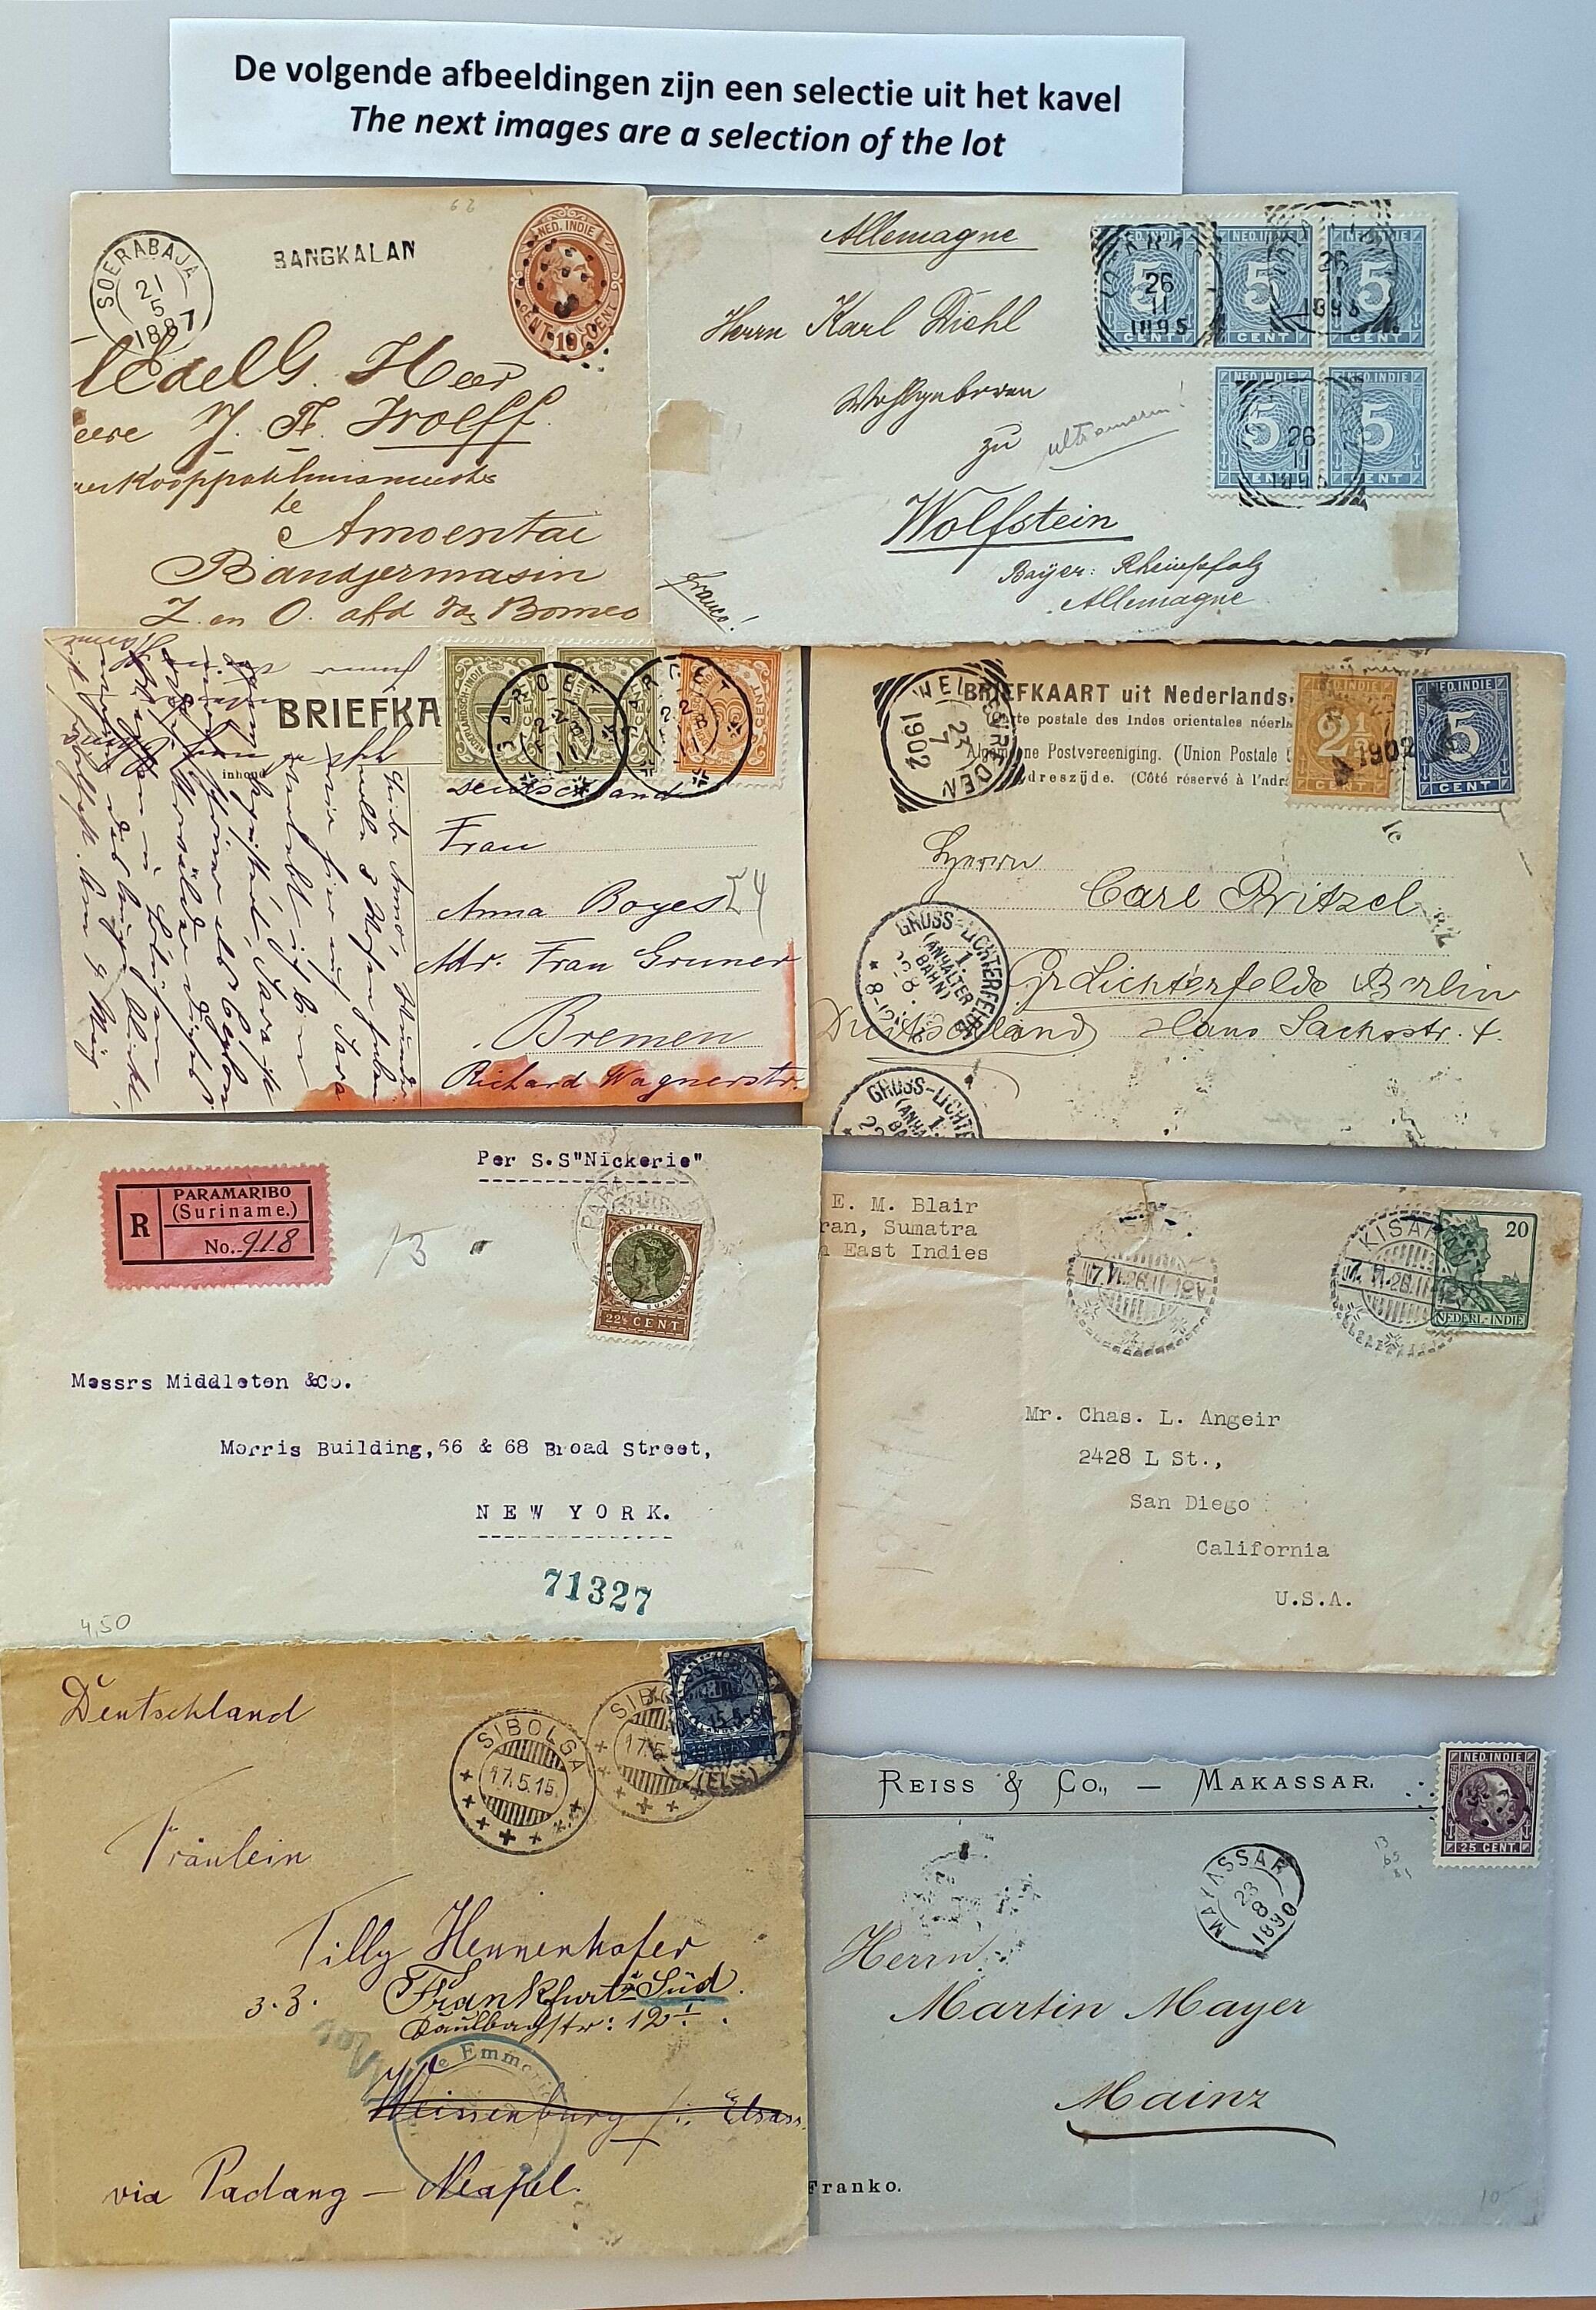 Lot 2119 - Netherlands and former colonies (former) Dutch Territories -  Corinphila Veilingen Auction 250-253 - Day 2 - Coins, medals, Netherlands and former colonies